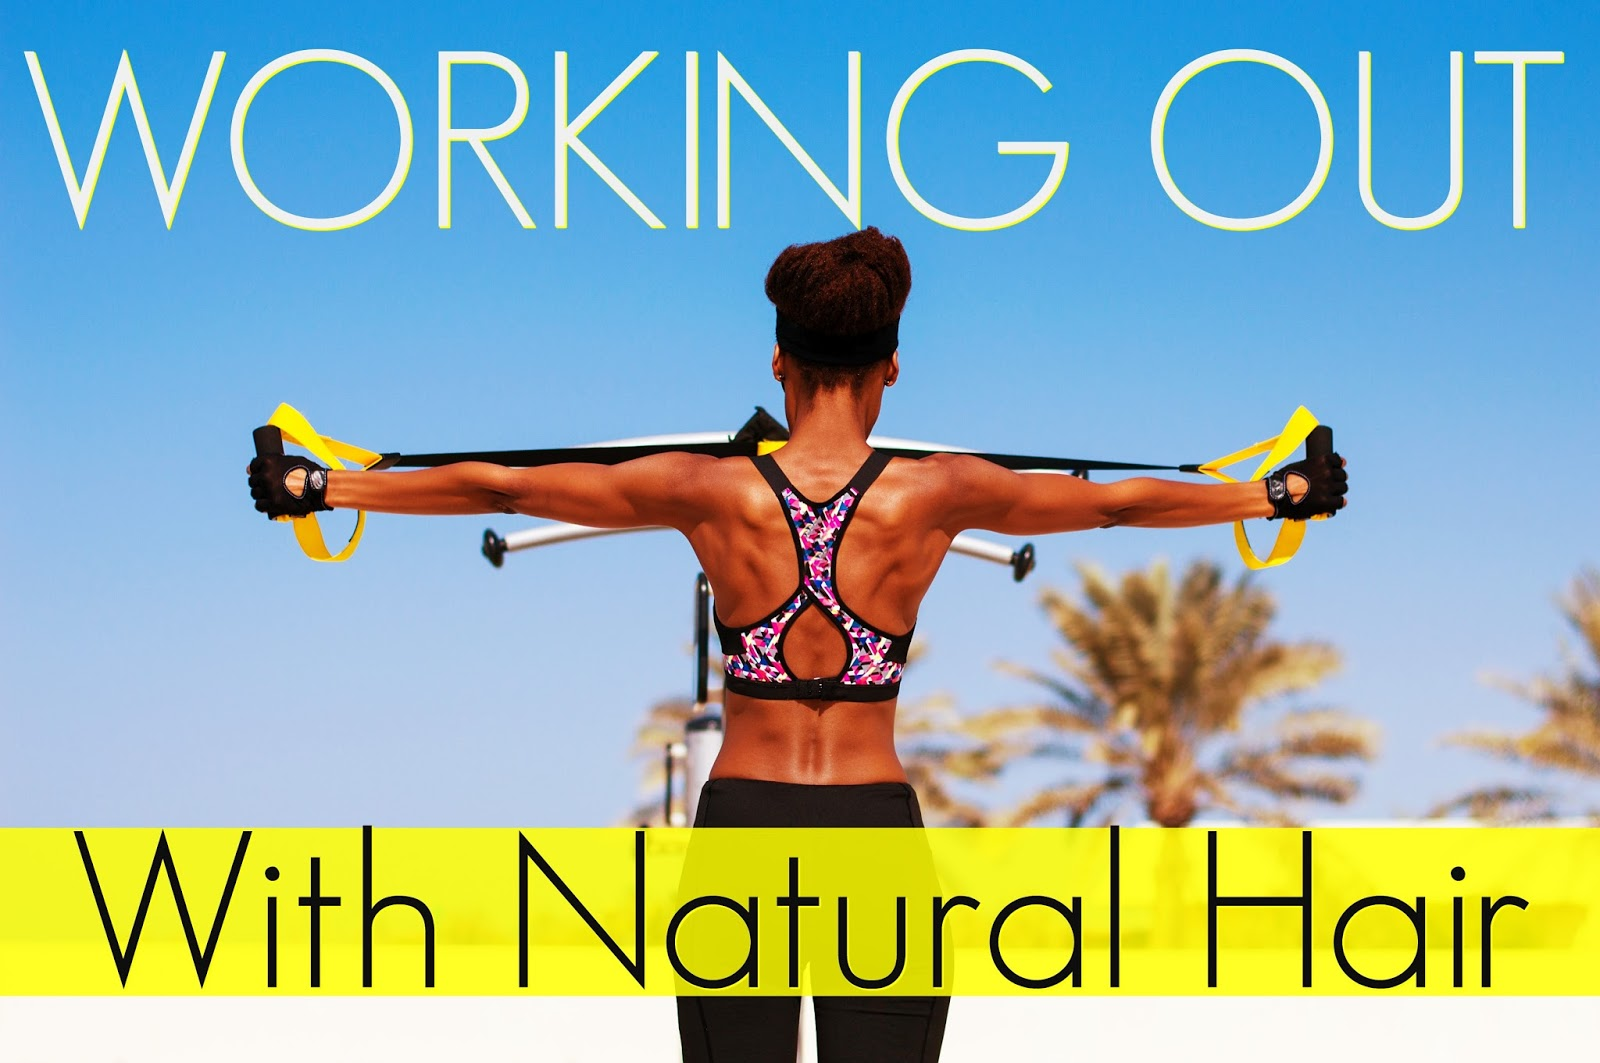 How often should you wash your natural hair when working out